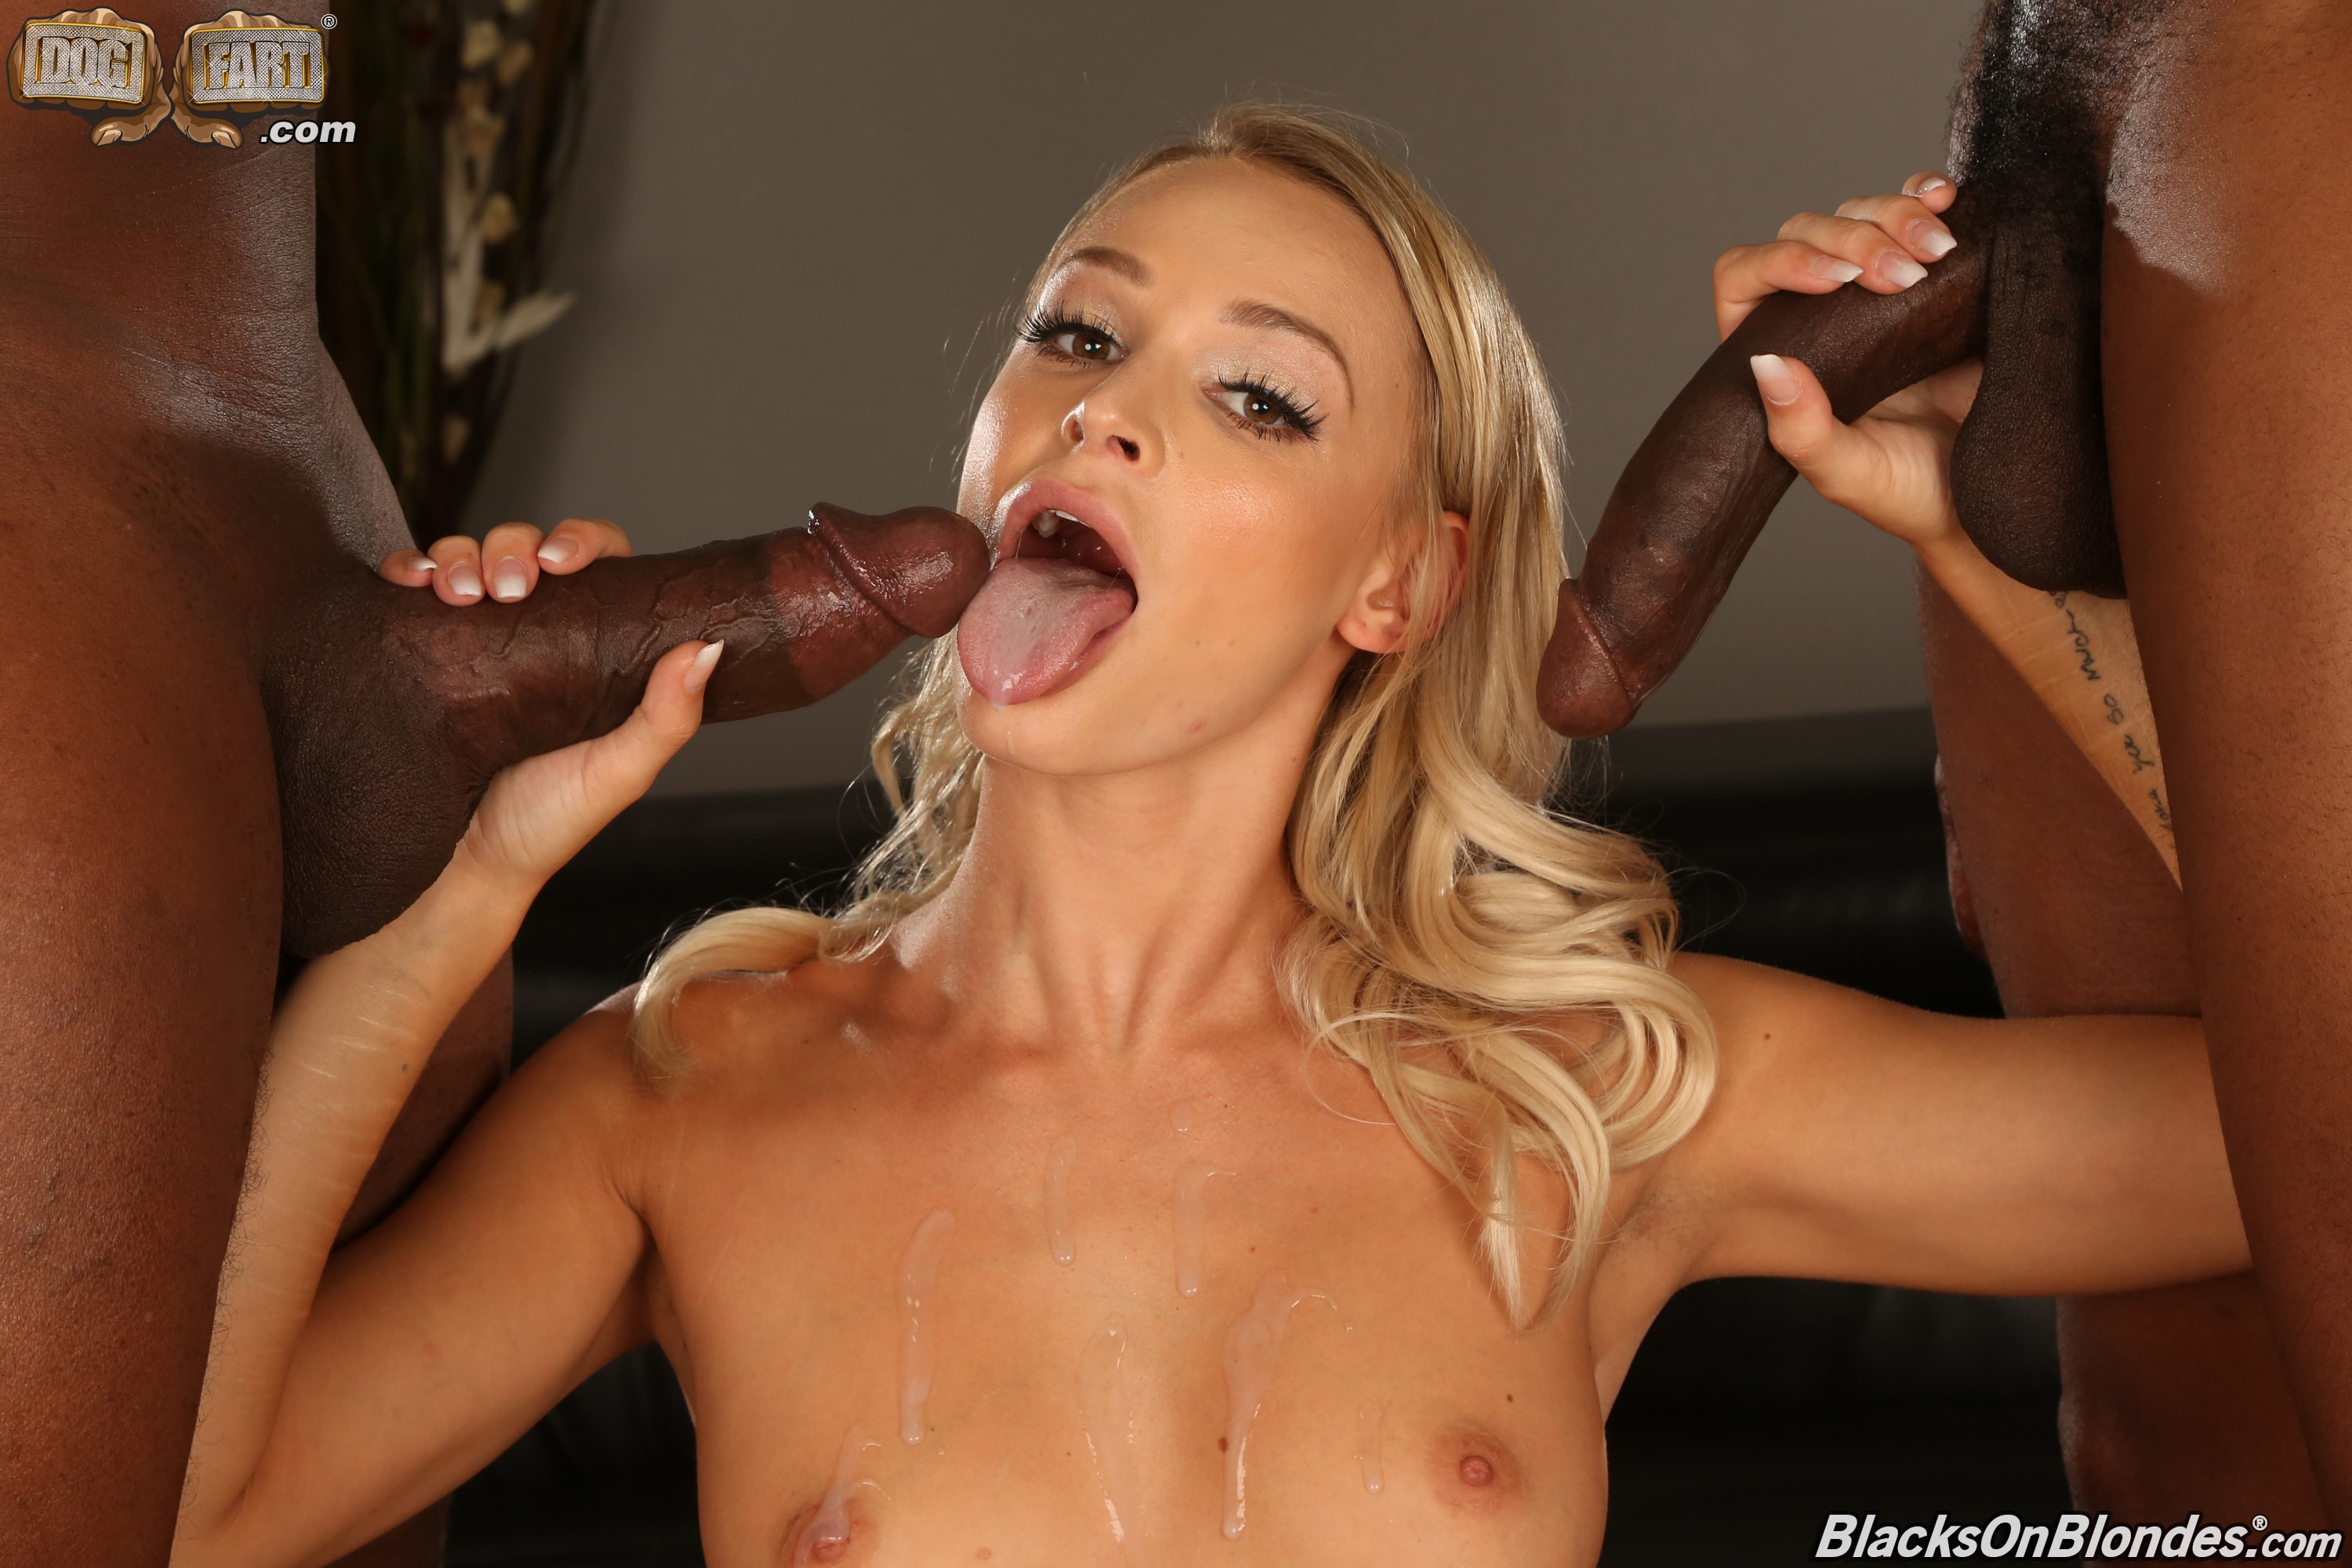 Dogfart '- Blacks On Blondes - Scene 3' starring Emma Hix (Photo 29)